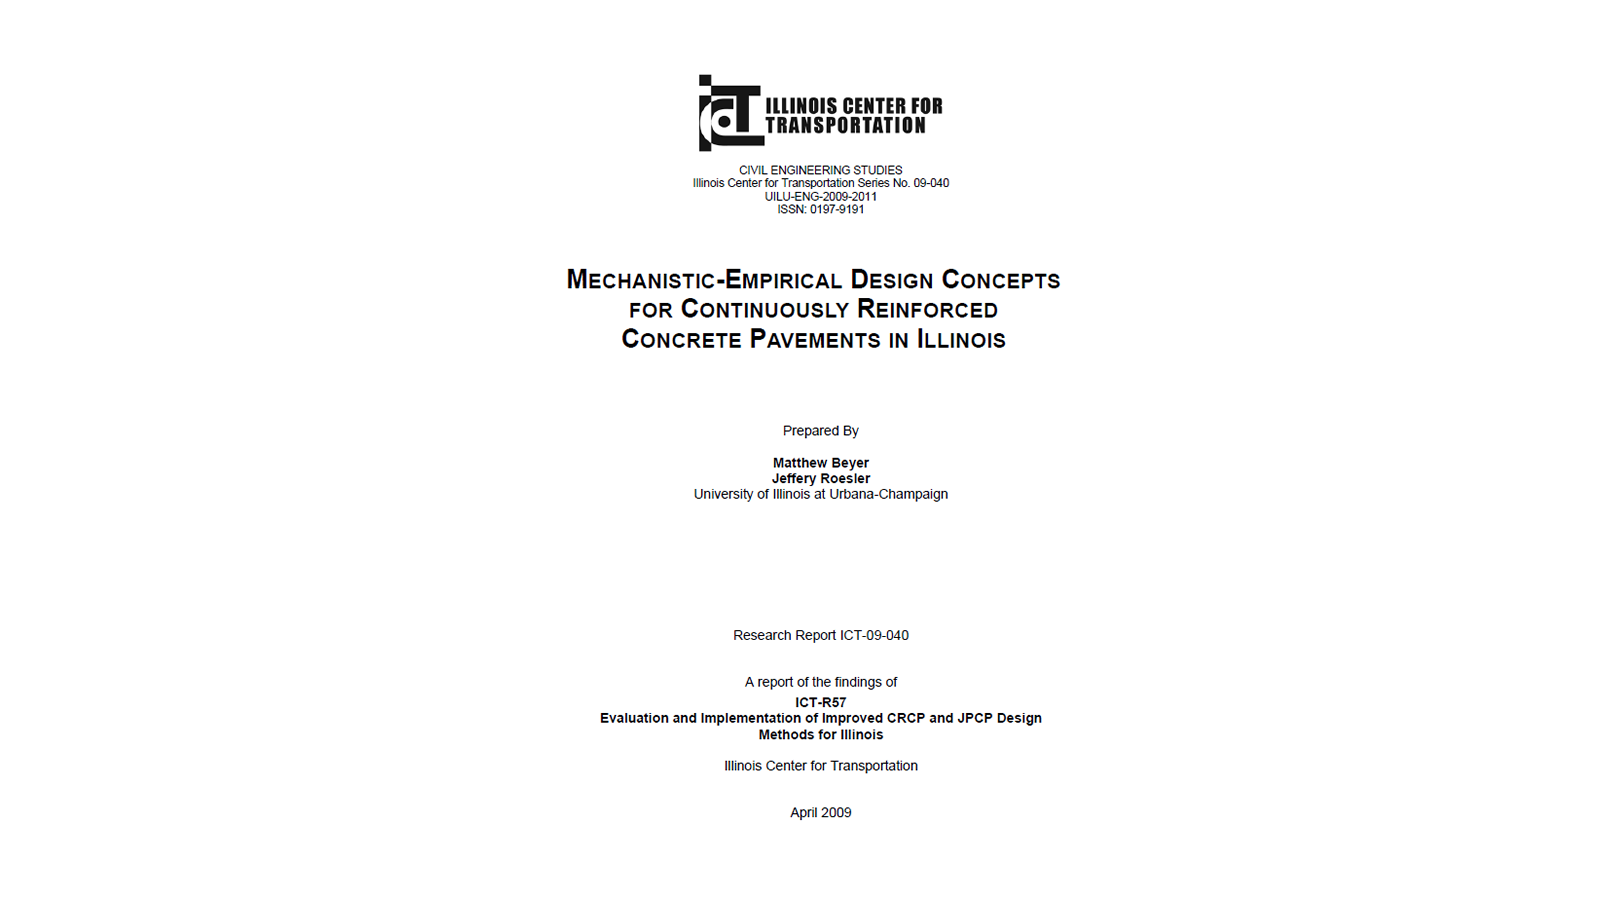 Mechanistic-Empirical Design Concepts for CRCP in Illinois (FHWA-ICT-09-040)